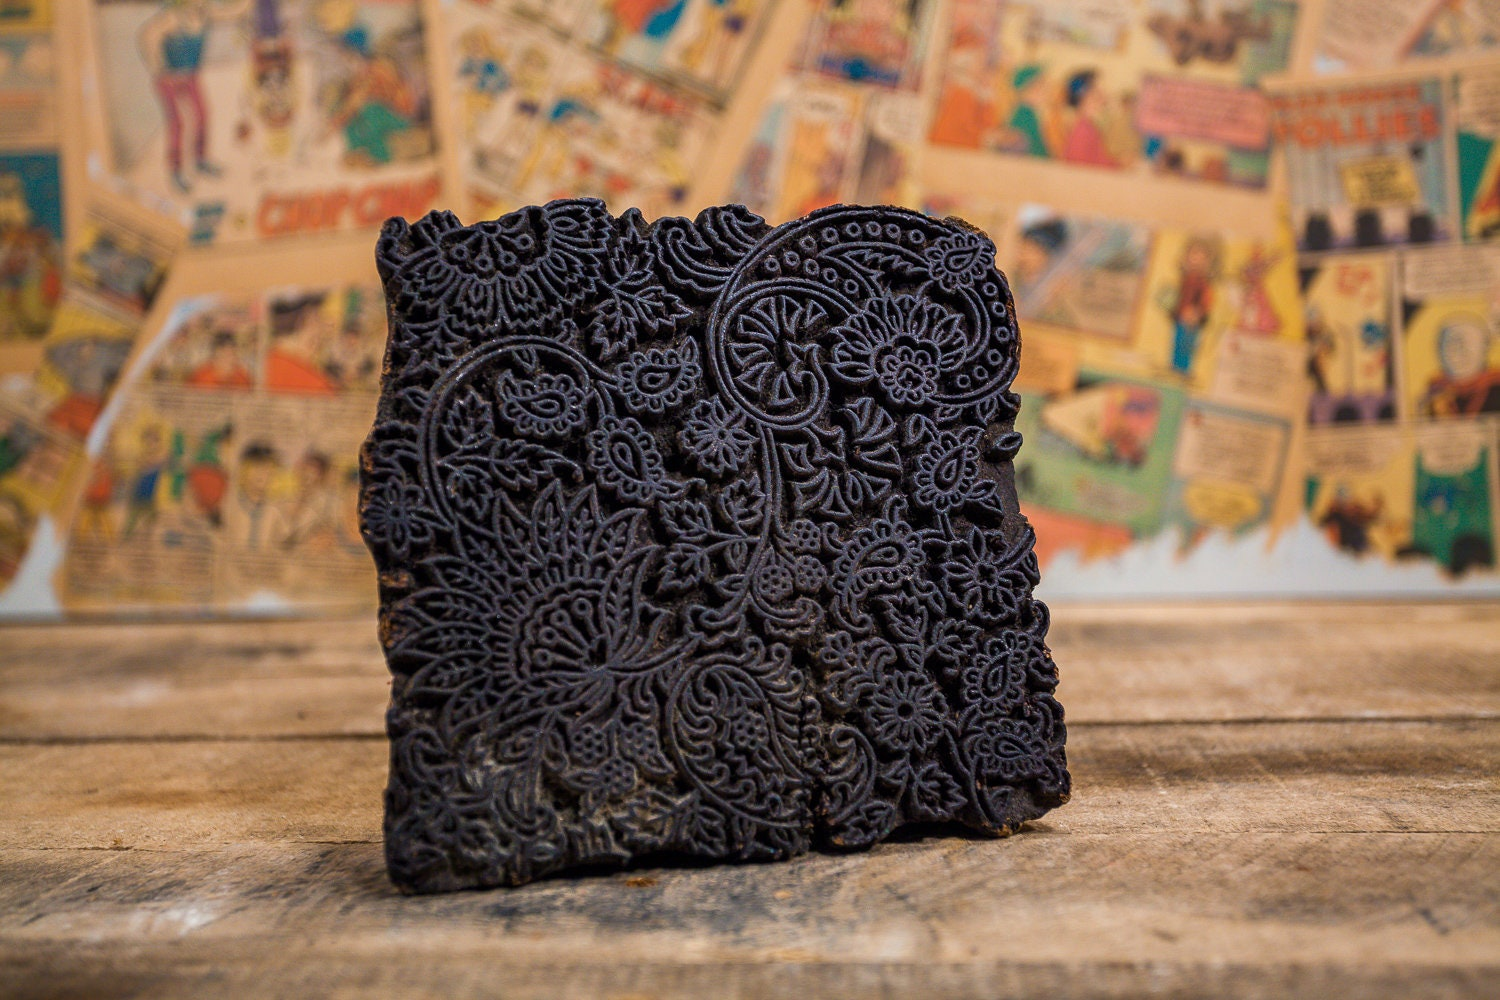 Blossom Hand-carved Indian Woodblock Stamp